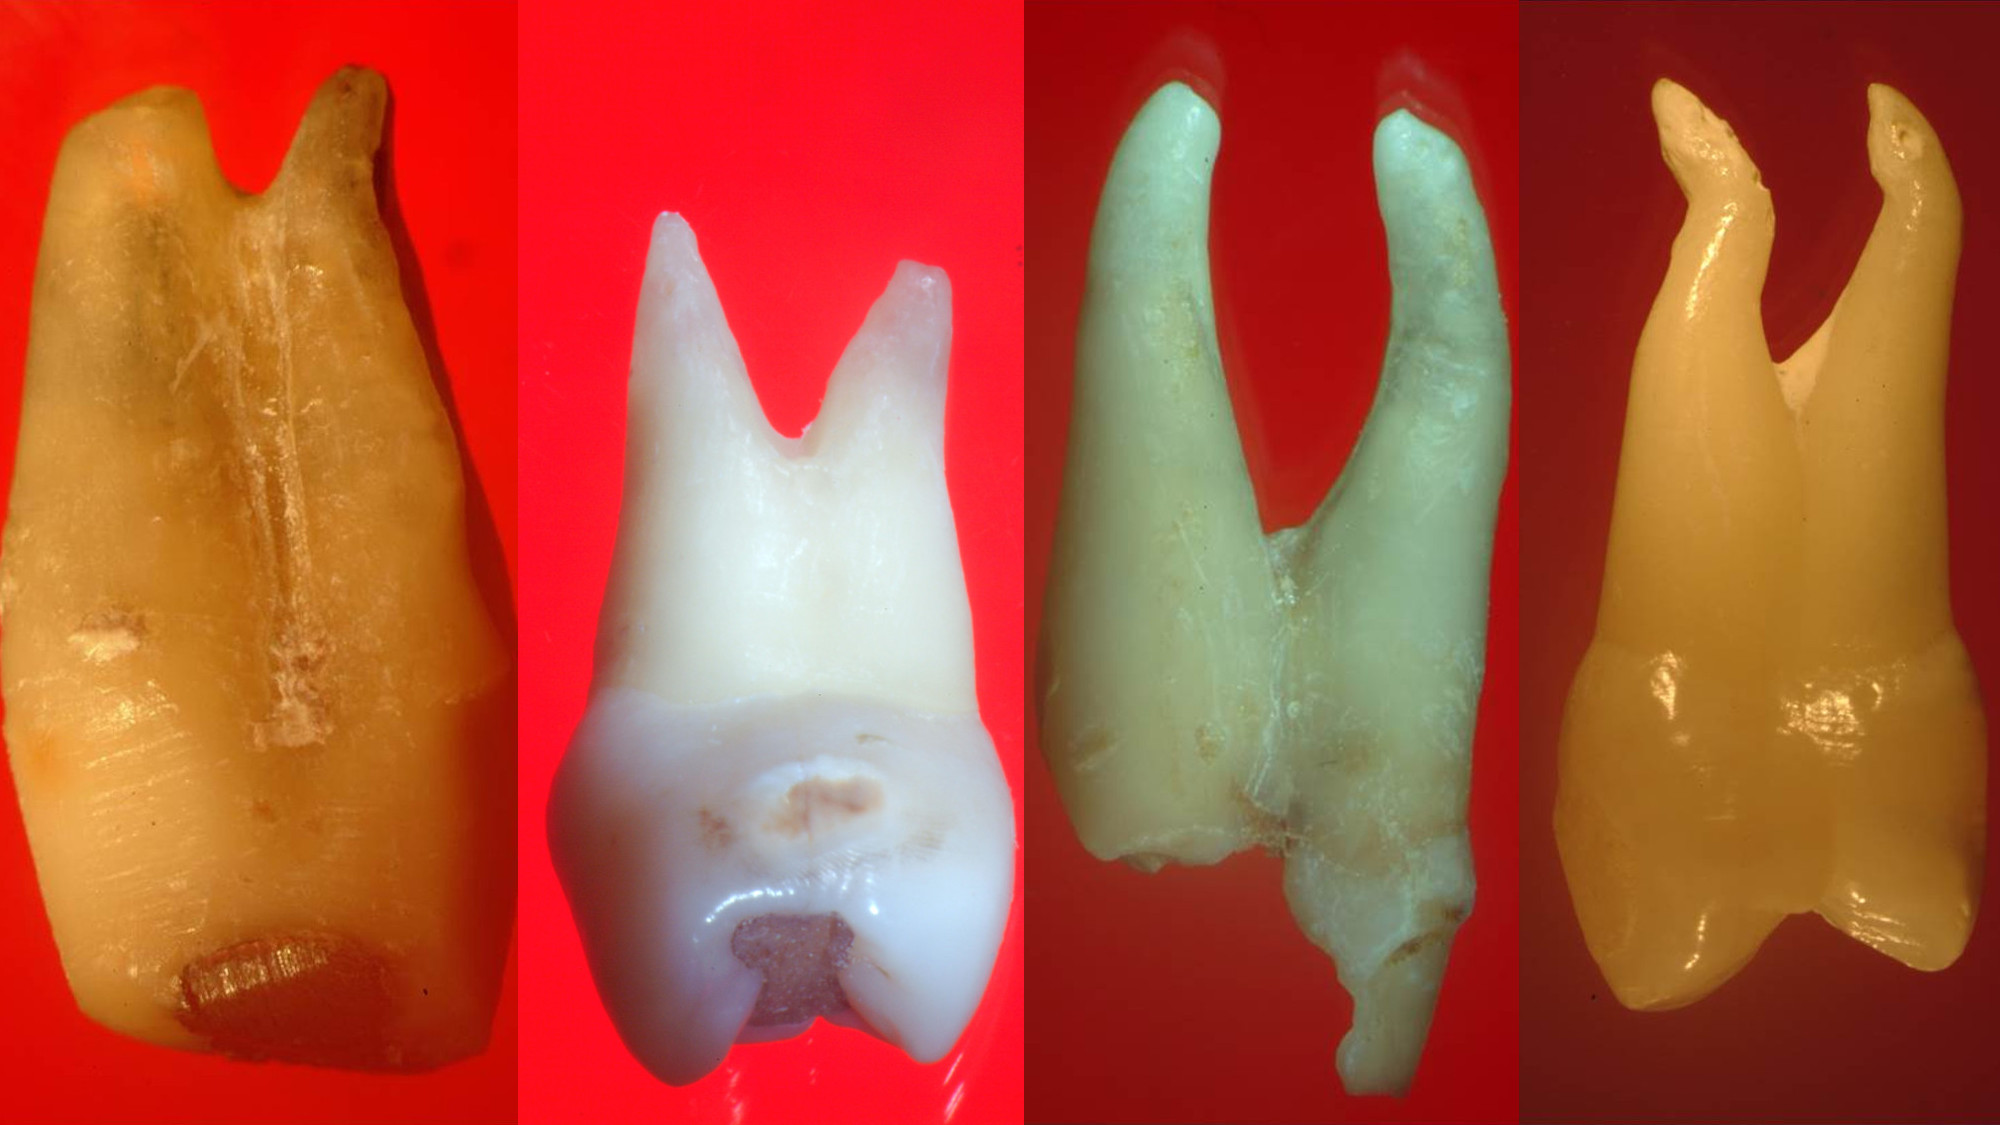 Buccal root of the bifurcated maxillary premolar—a danger zone during root canal therapy